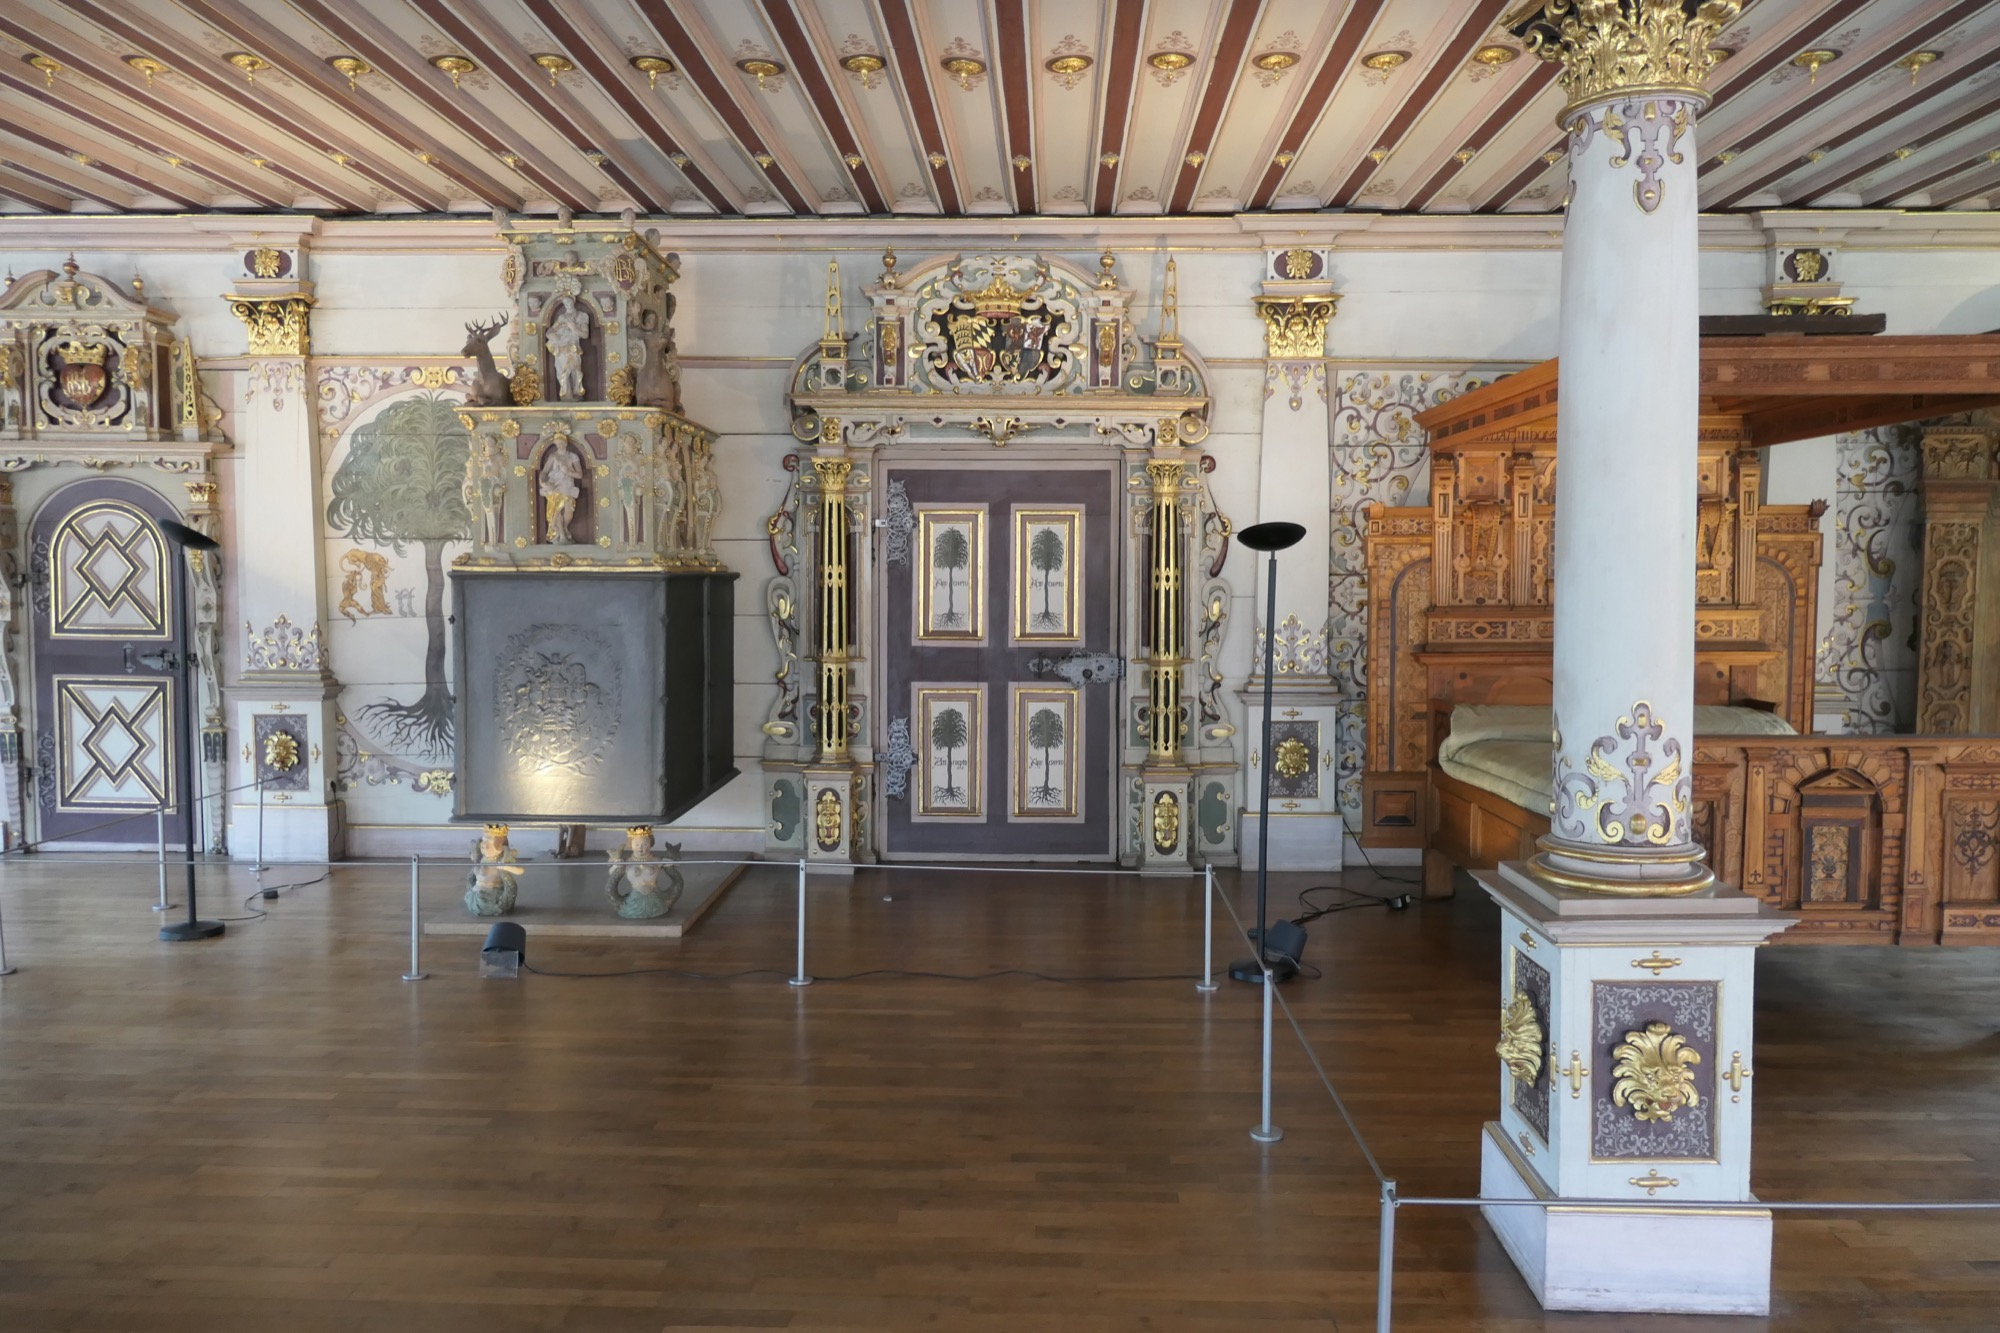 Golden Hall at Urach Residential Palace